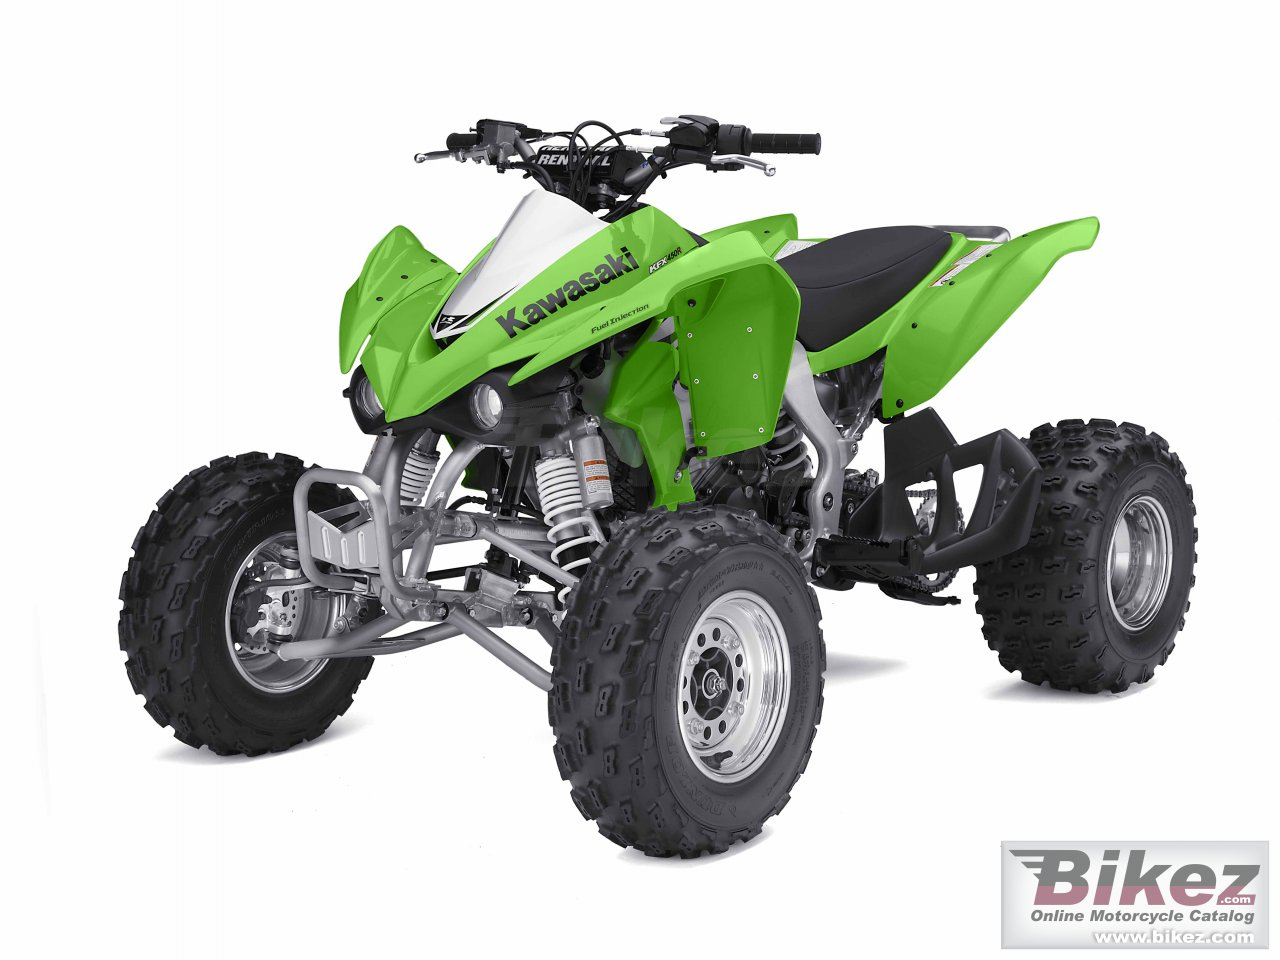 Big Kawasaki kfx 450r picture and wallpaper from Bikez.com